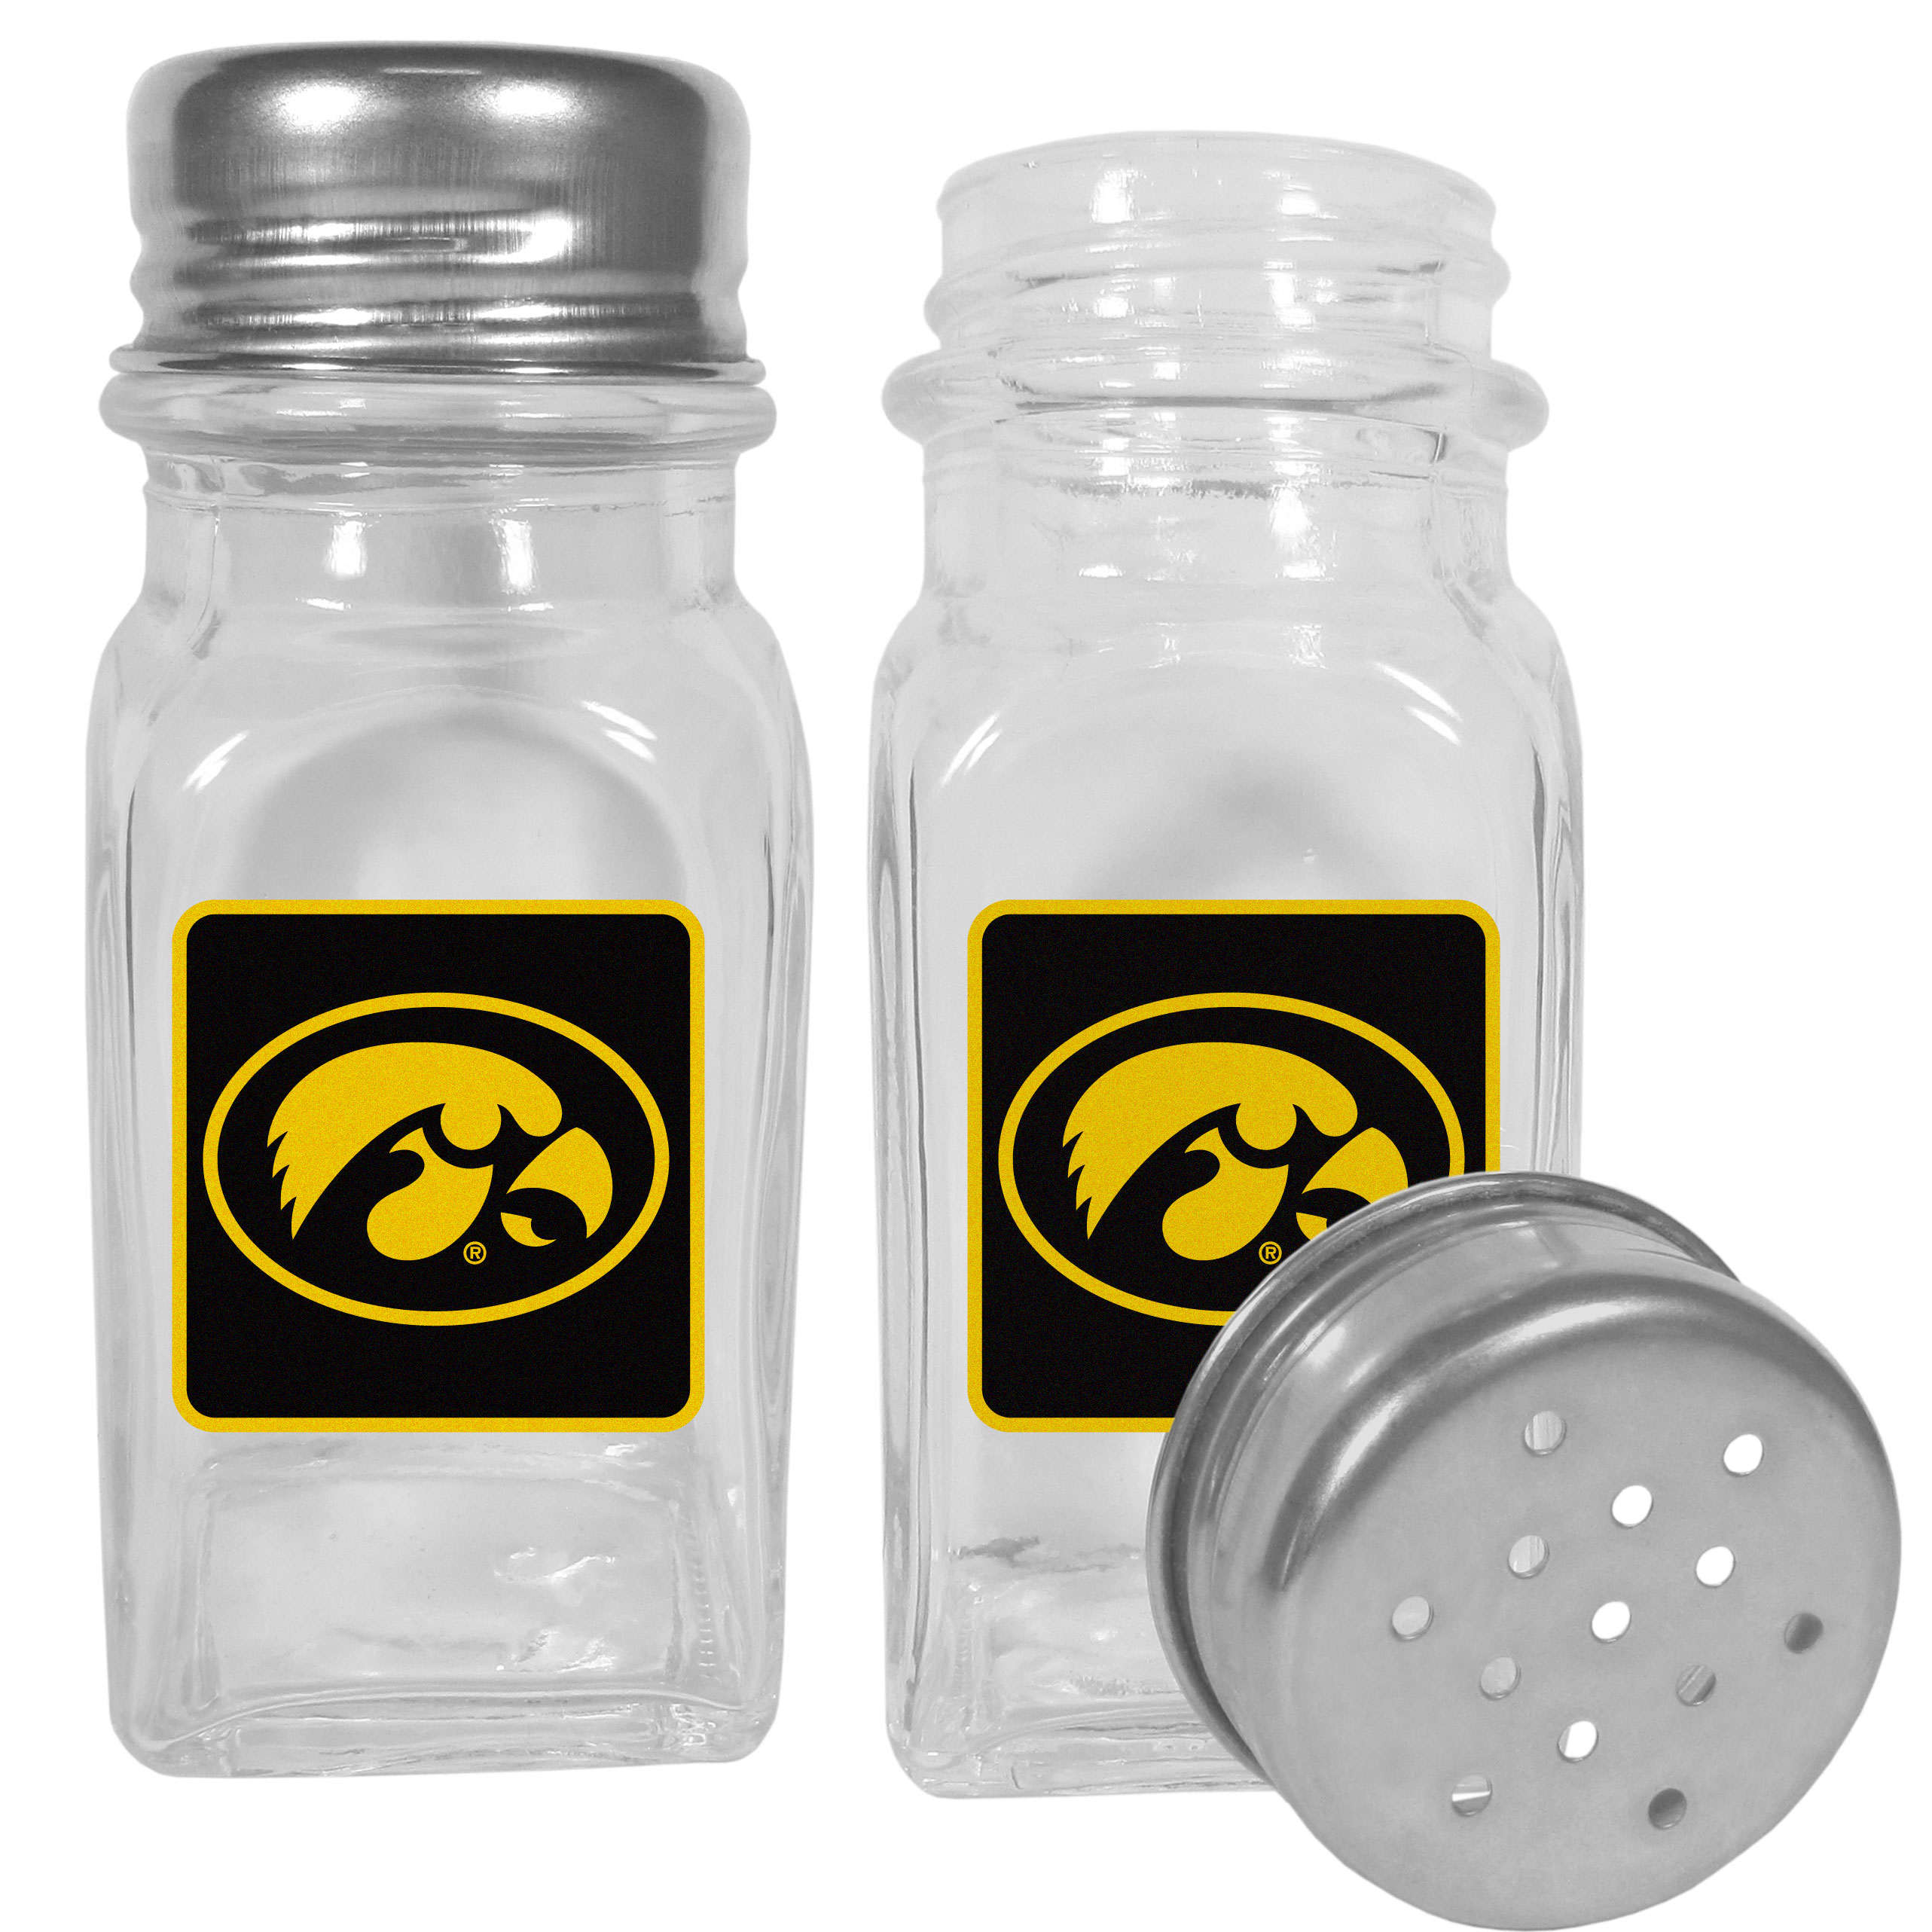 Iowa Hawkeyes Graphics Salt & Pepper Shaker - No tailgate party is complete without your Iowa Hawkeyes salt & pepper shakers featuring bright team logos. The diner replica salt and pepper shakers are glass with screw top lids. These team shakers are a great grill accessory whether you are barbecuing on the patio, picnicing or having a game day party.